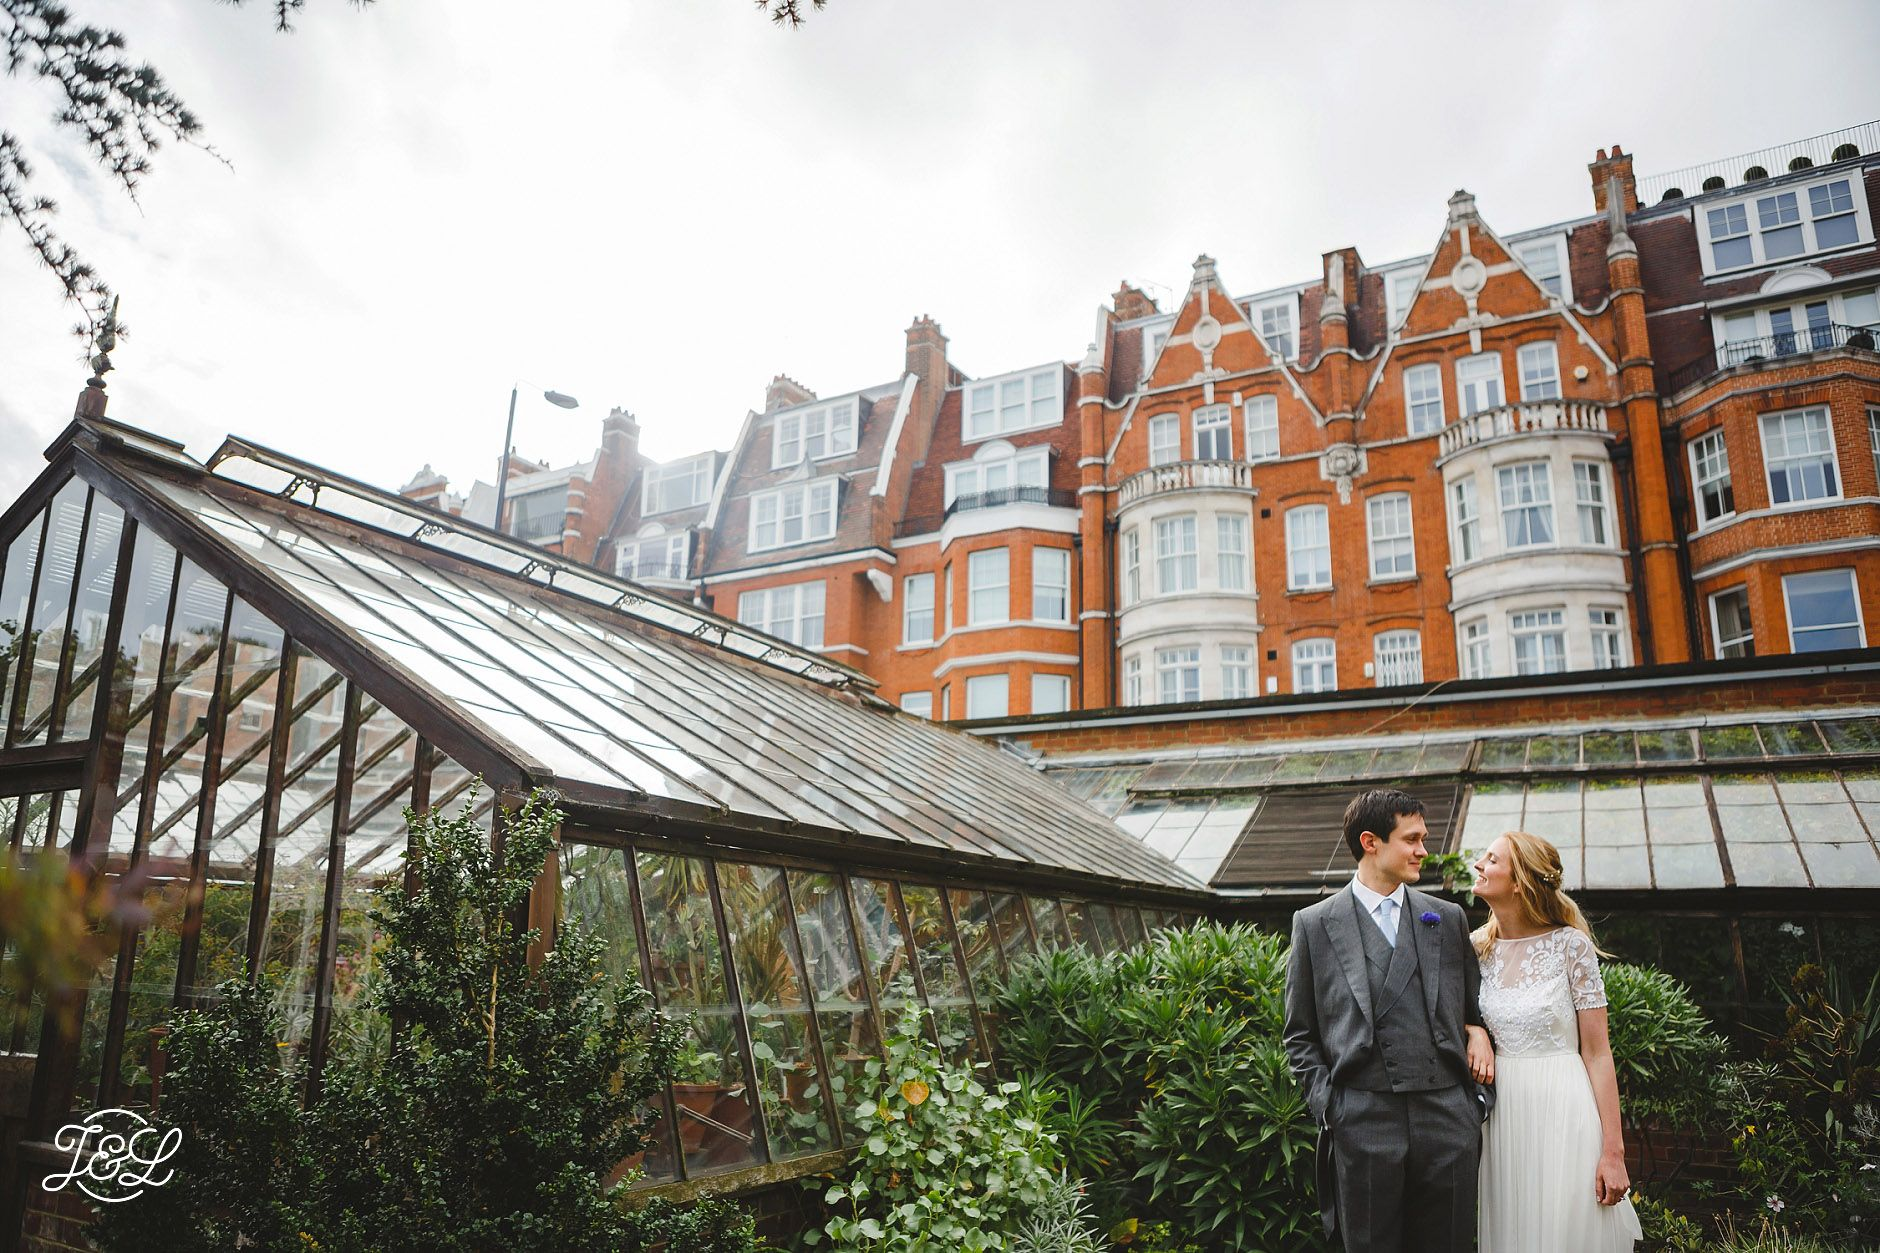 Chelsea Physic Garden Wedding with India u0026